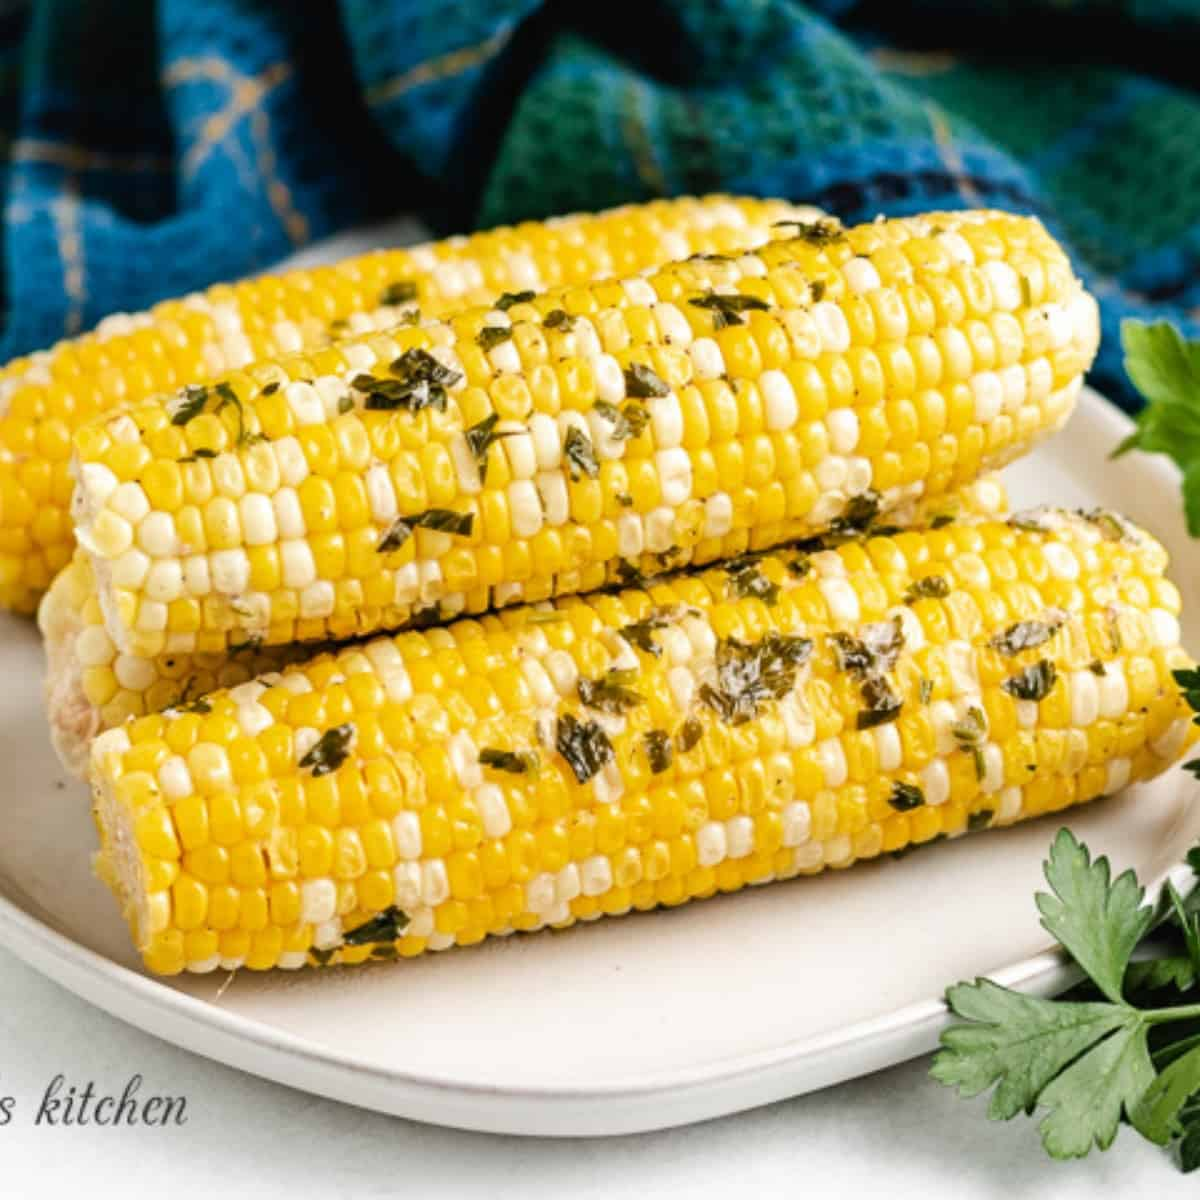 The grilled corn on the cob on a plated.